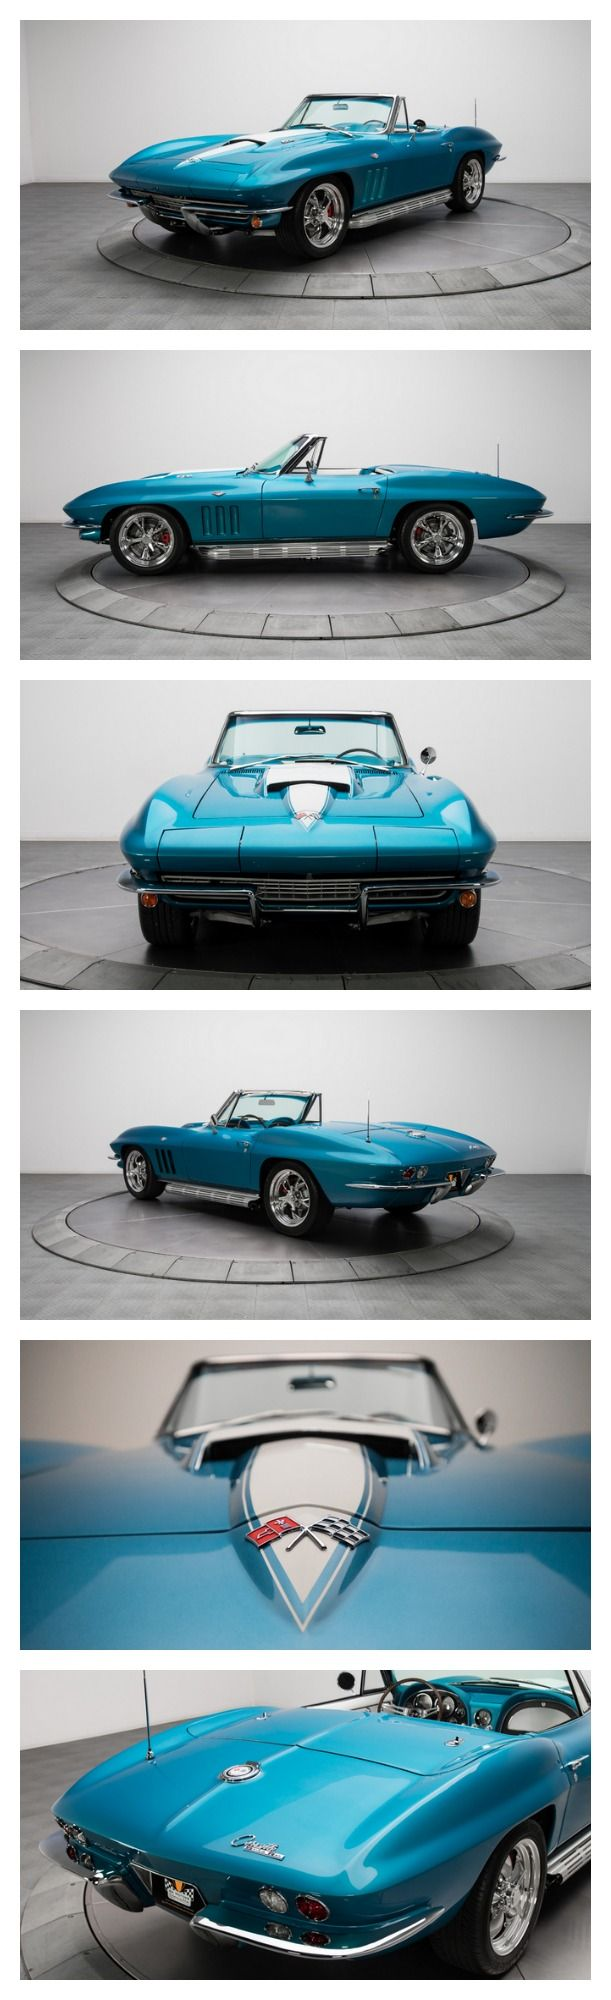 This world class Chevy Stingray is the car of your dreams! #ThrowbackThursday